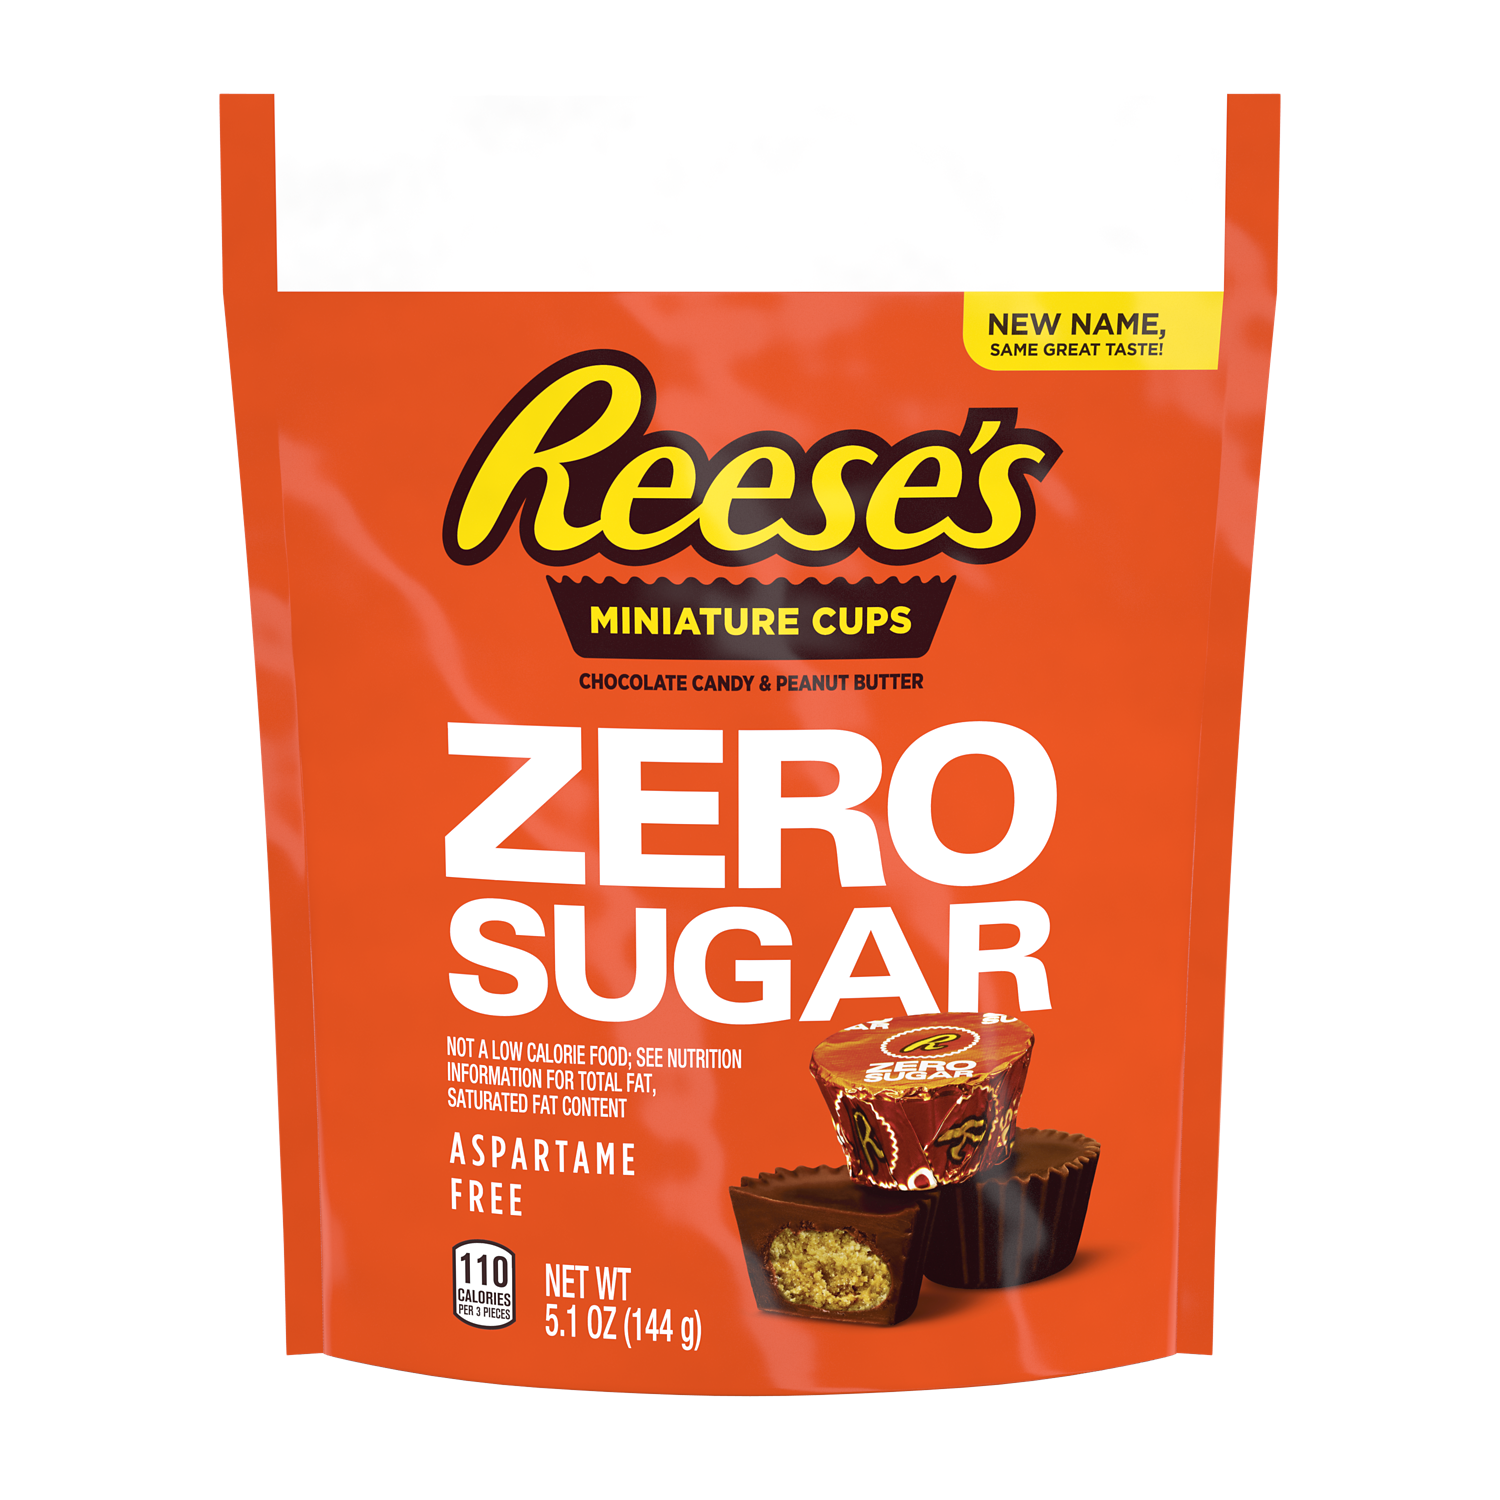 REESE'S Zero Sugar Miniatures Chocolate Candy Peanut Butter Cups, 5.1 oz bag - Front of Package